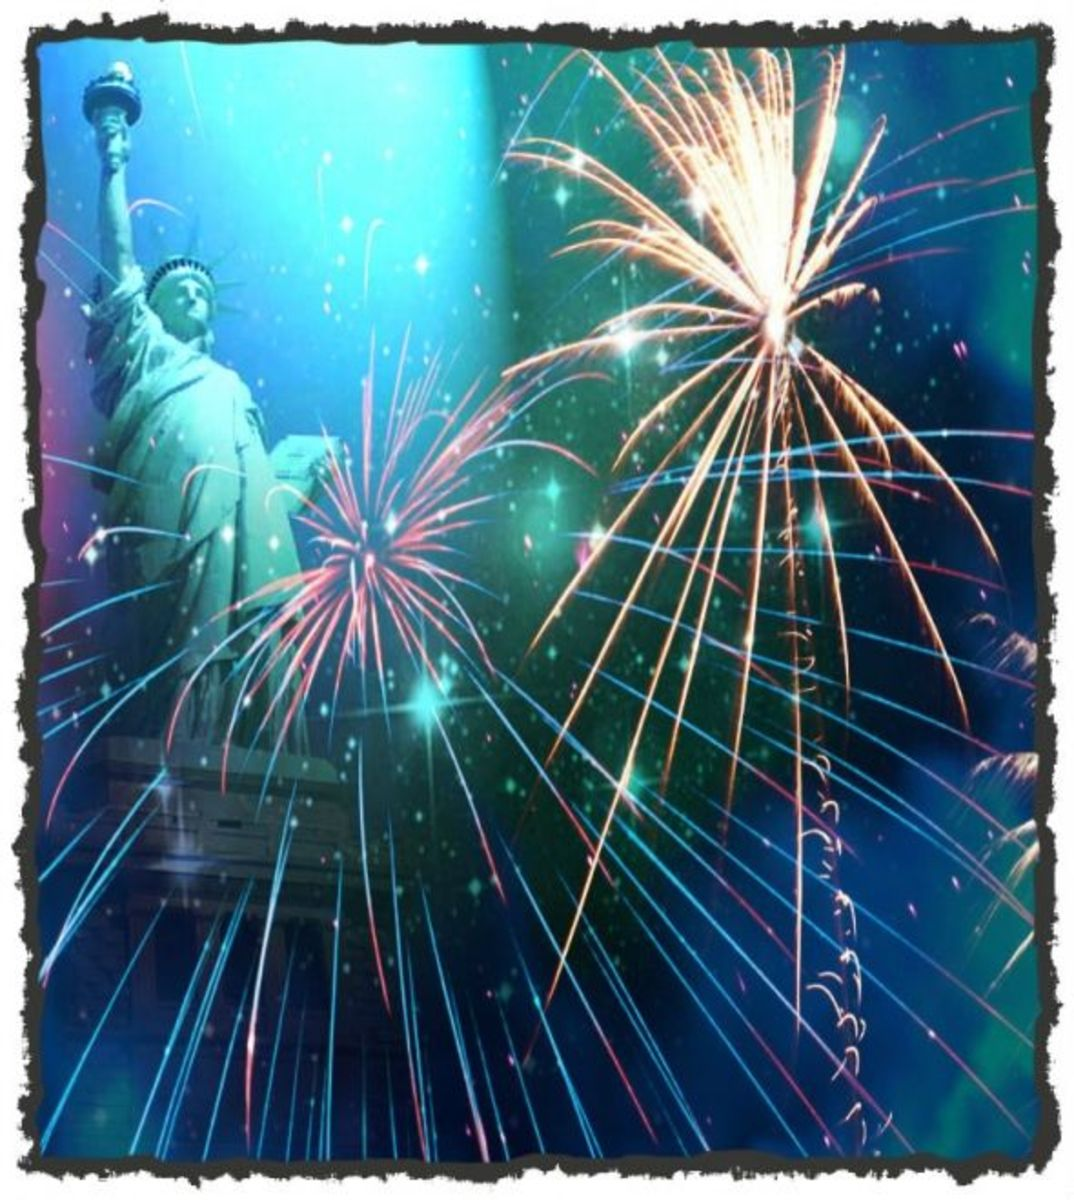 4th of July Fireworks Clip Art Statue of Liberty